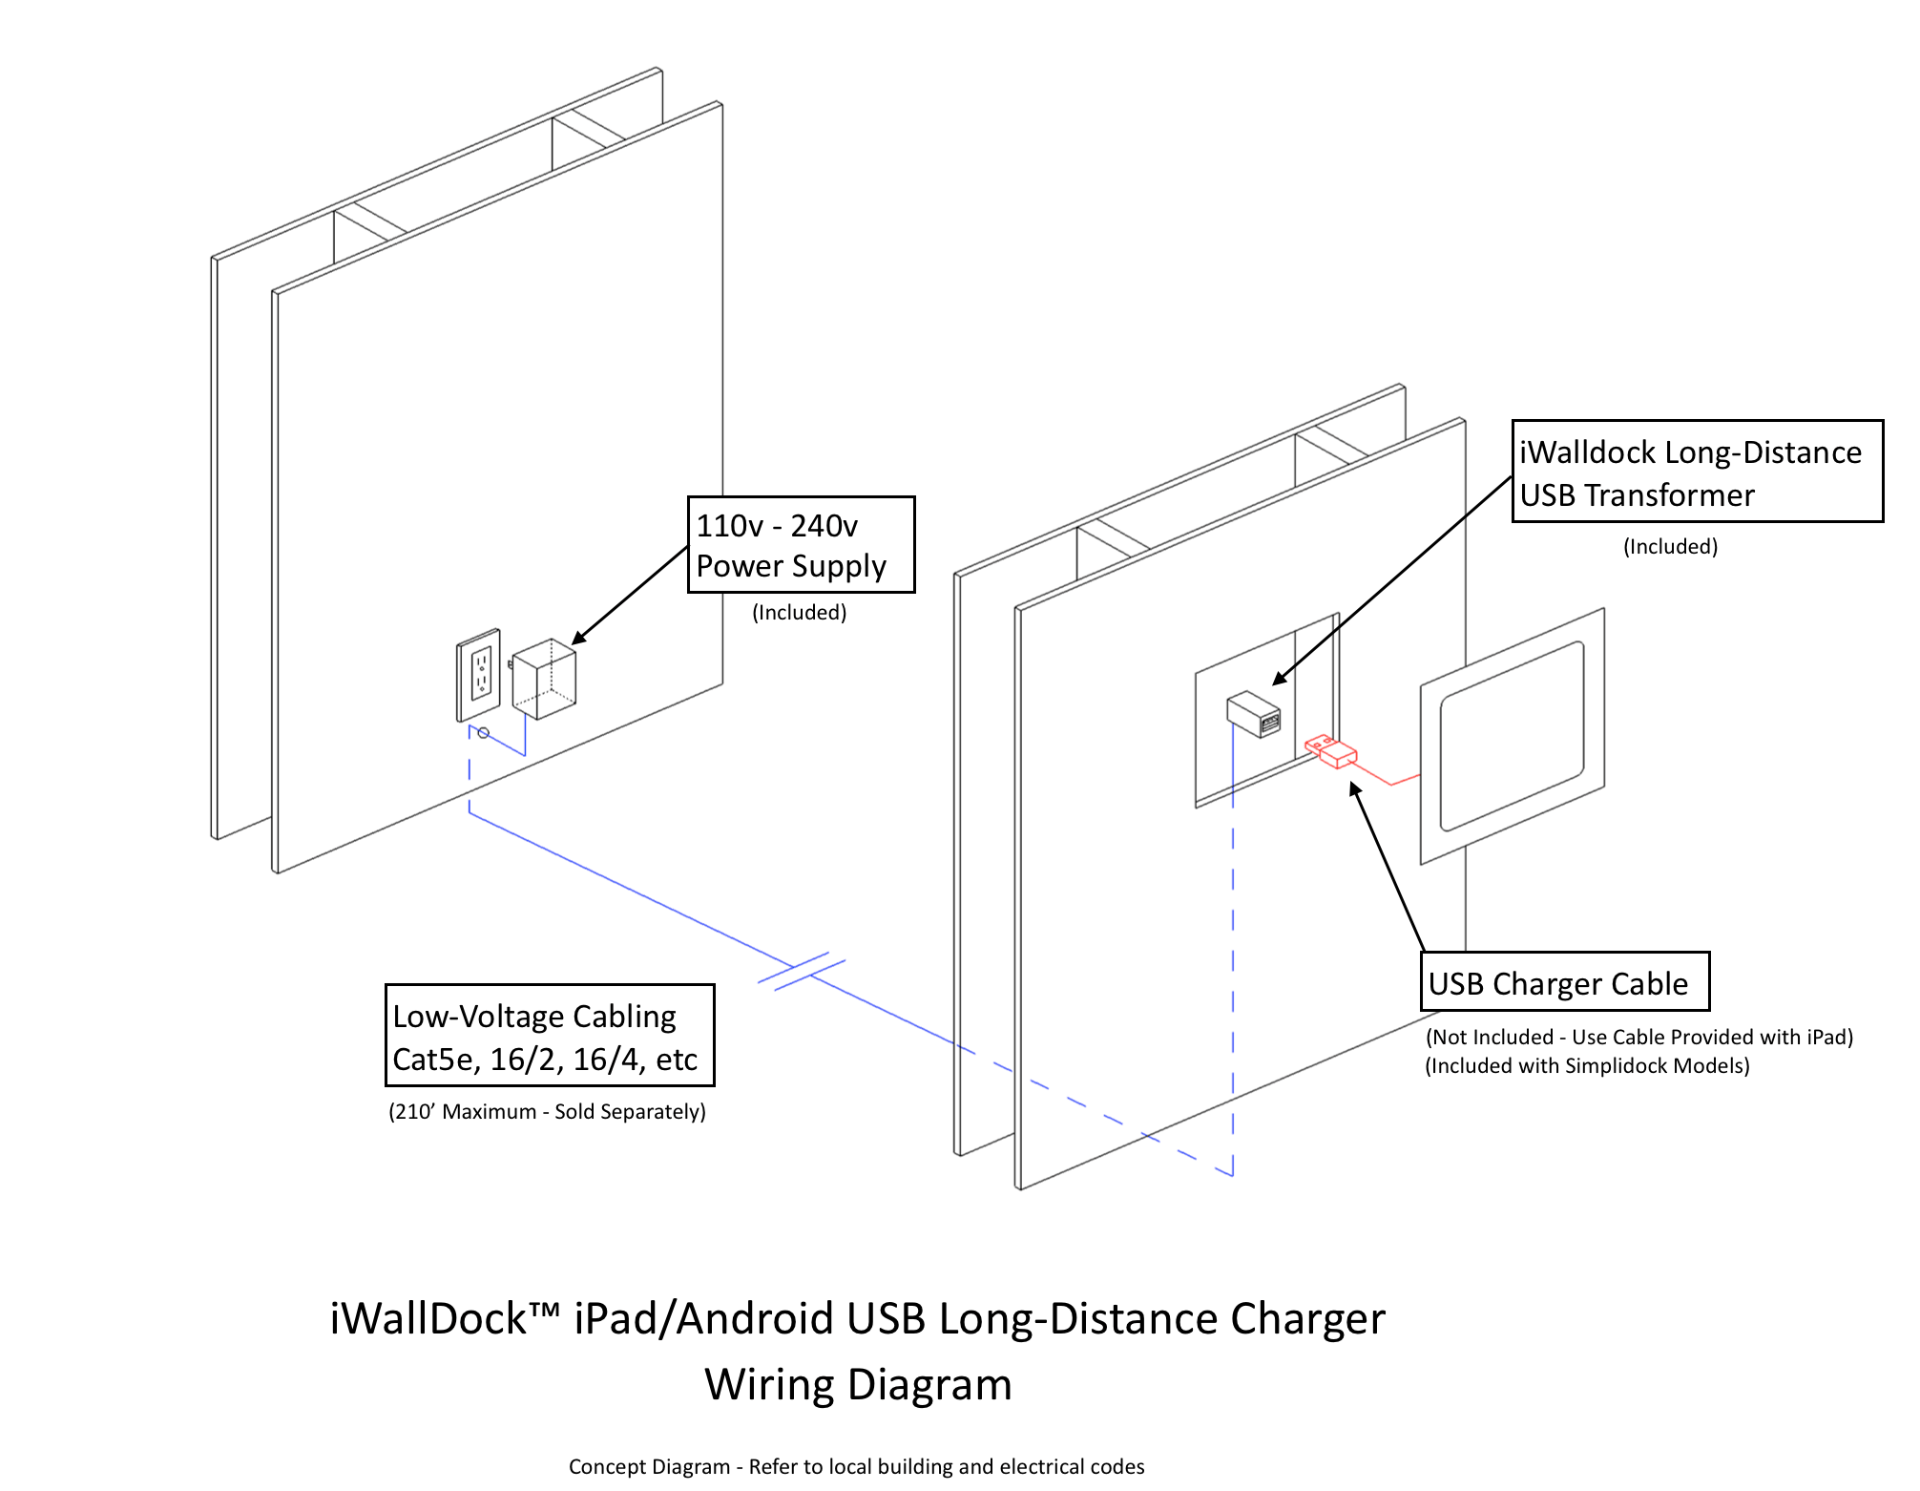 Ipad Usb Wiring Diagram Libraries Power Cable Color Schematic Cord For Simple Diagramsiwalldock 2 Wire Charging Kit